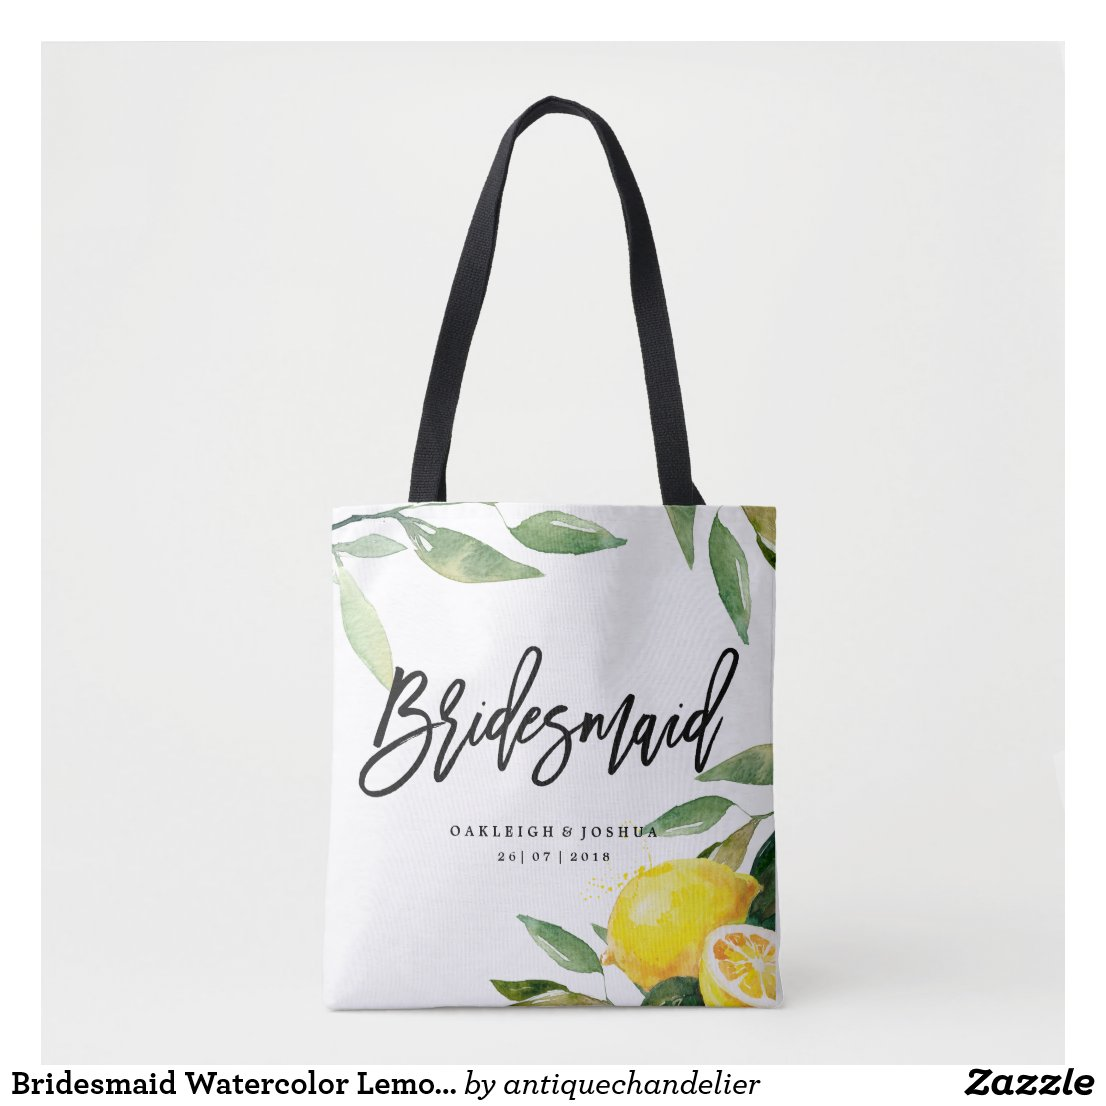 Bridesmaid Watercolor Lemon Wedding Tote Bag